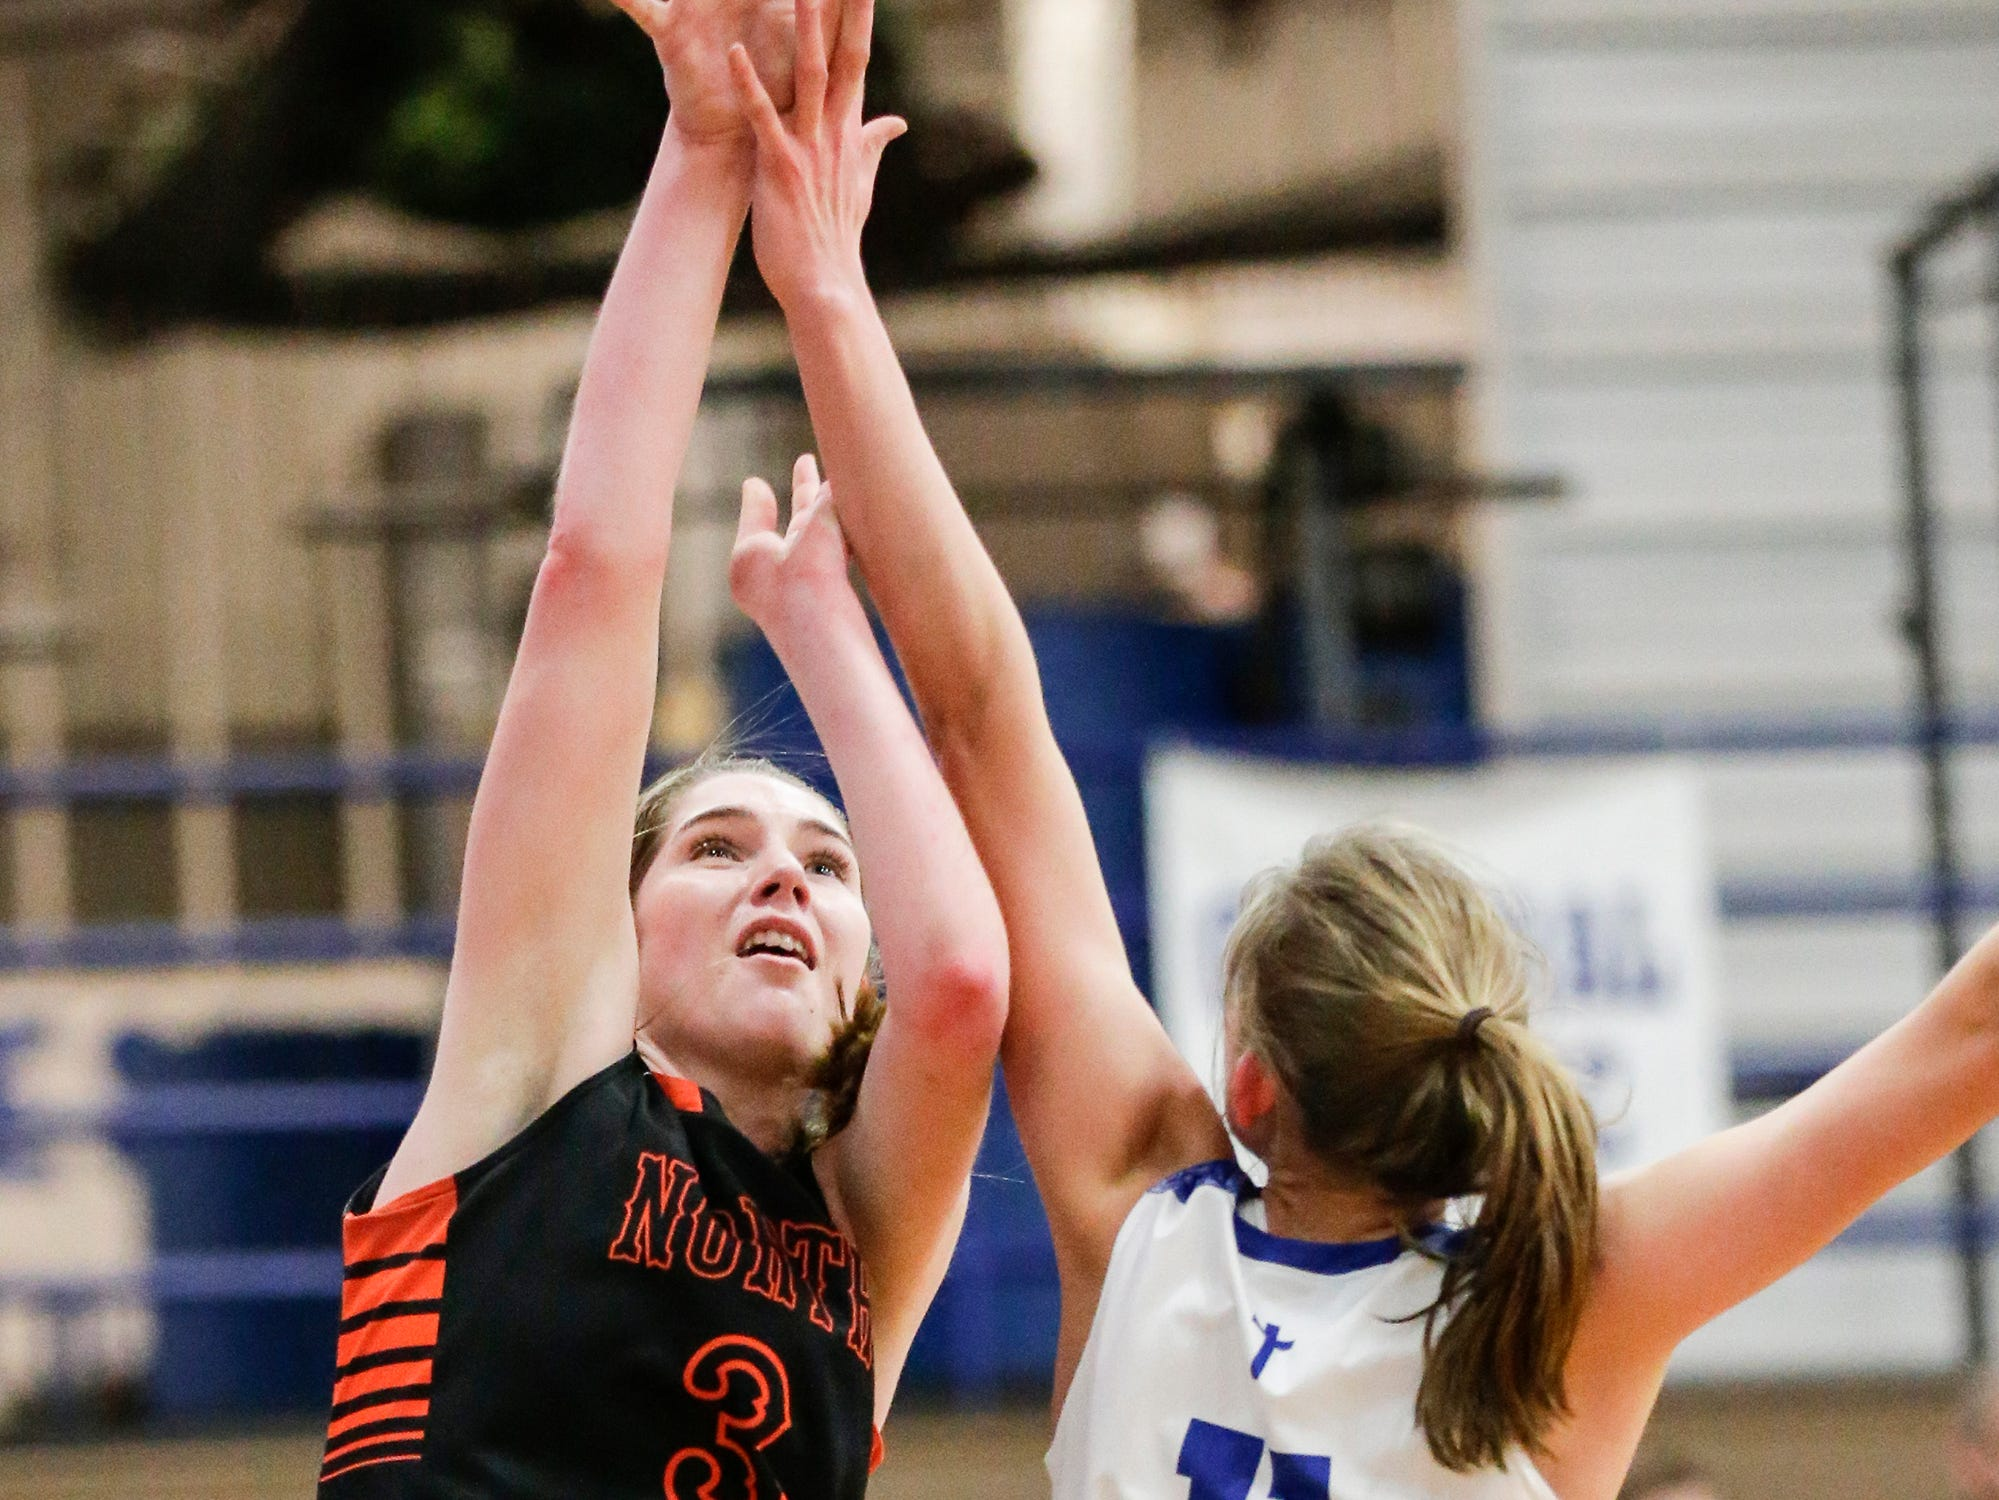 North Fond du Lac High School girls basketball's Rebecca Kingsland goes up for a basket over  Winnebago Lutheran Academy's Alyssa Lorenz January 10, 2019 during their game in Fond du Lac. Doug Raflik/USA TODAY NETWORK-Wisconsin